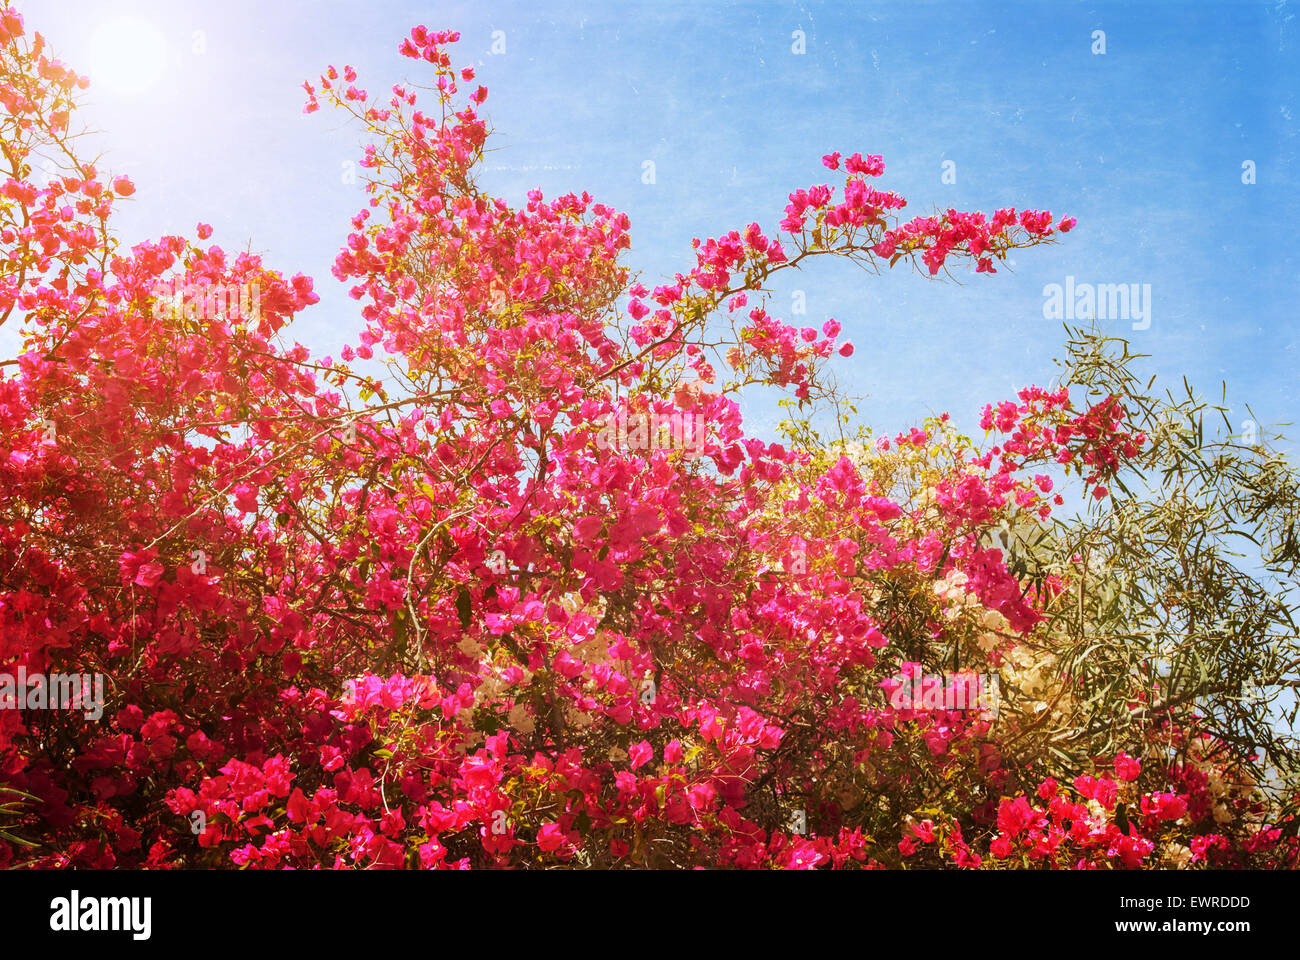 Big bush blooming pink flowers azaleas. Photo textured in old color ...